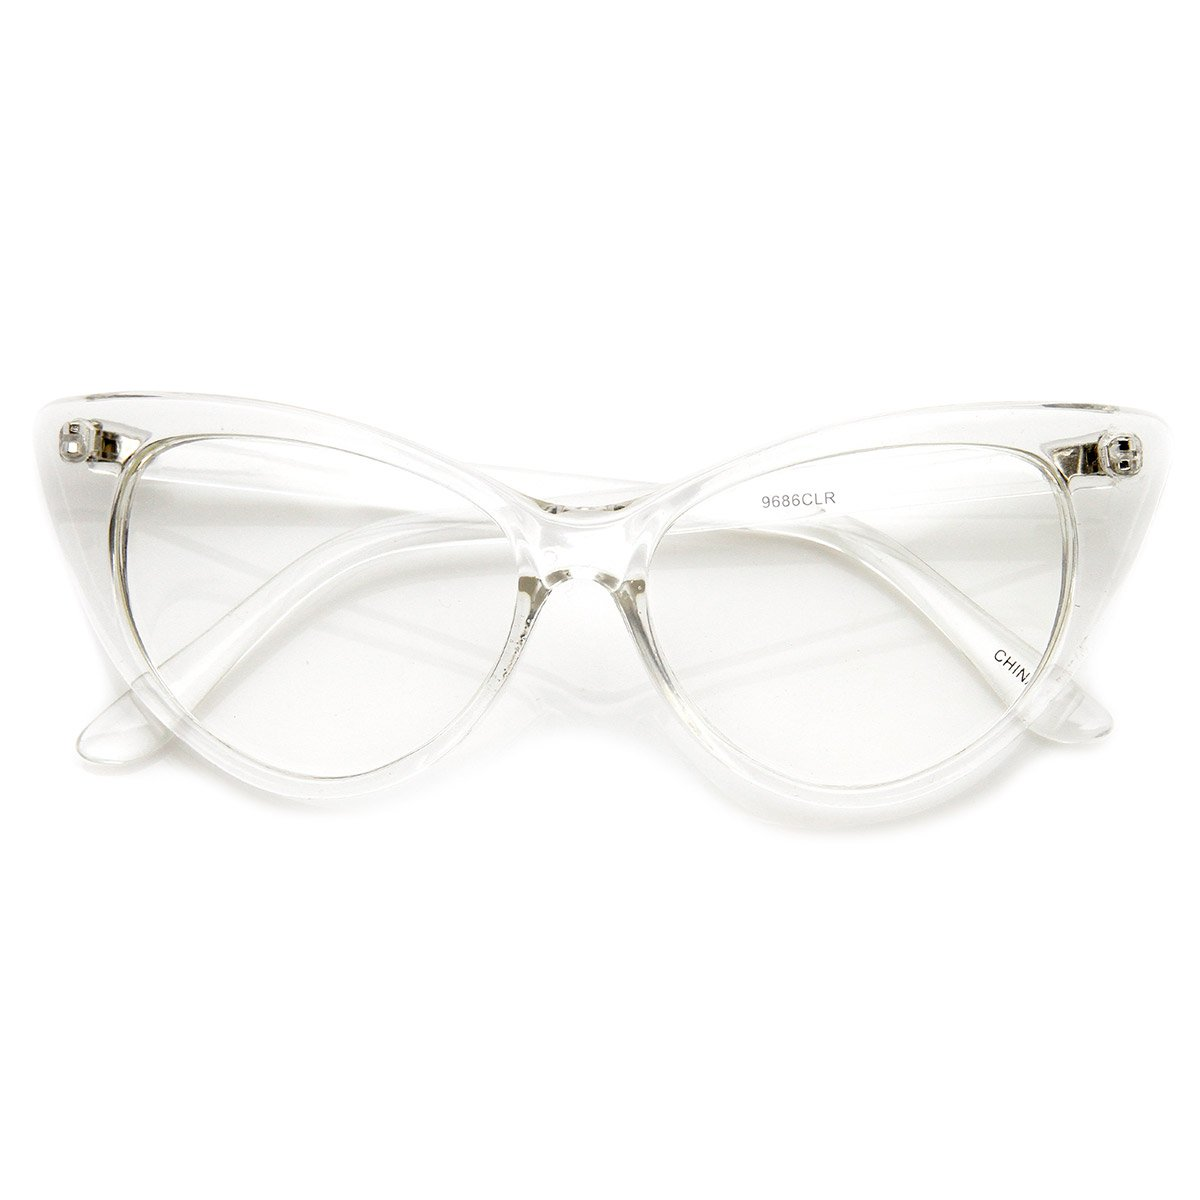 zeroUV- Super Cat Eye Glasses Vintage Inspired Mod Fashion Clear Lens Eyewear